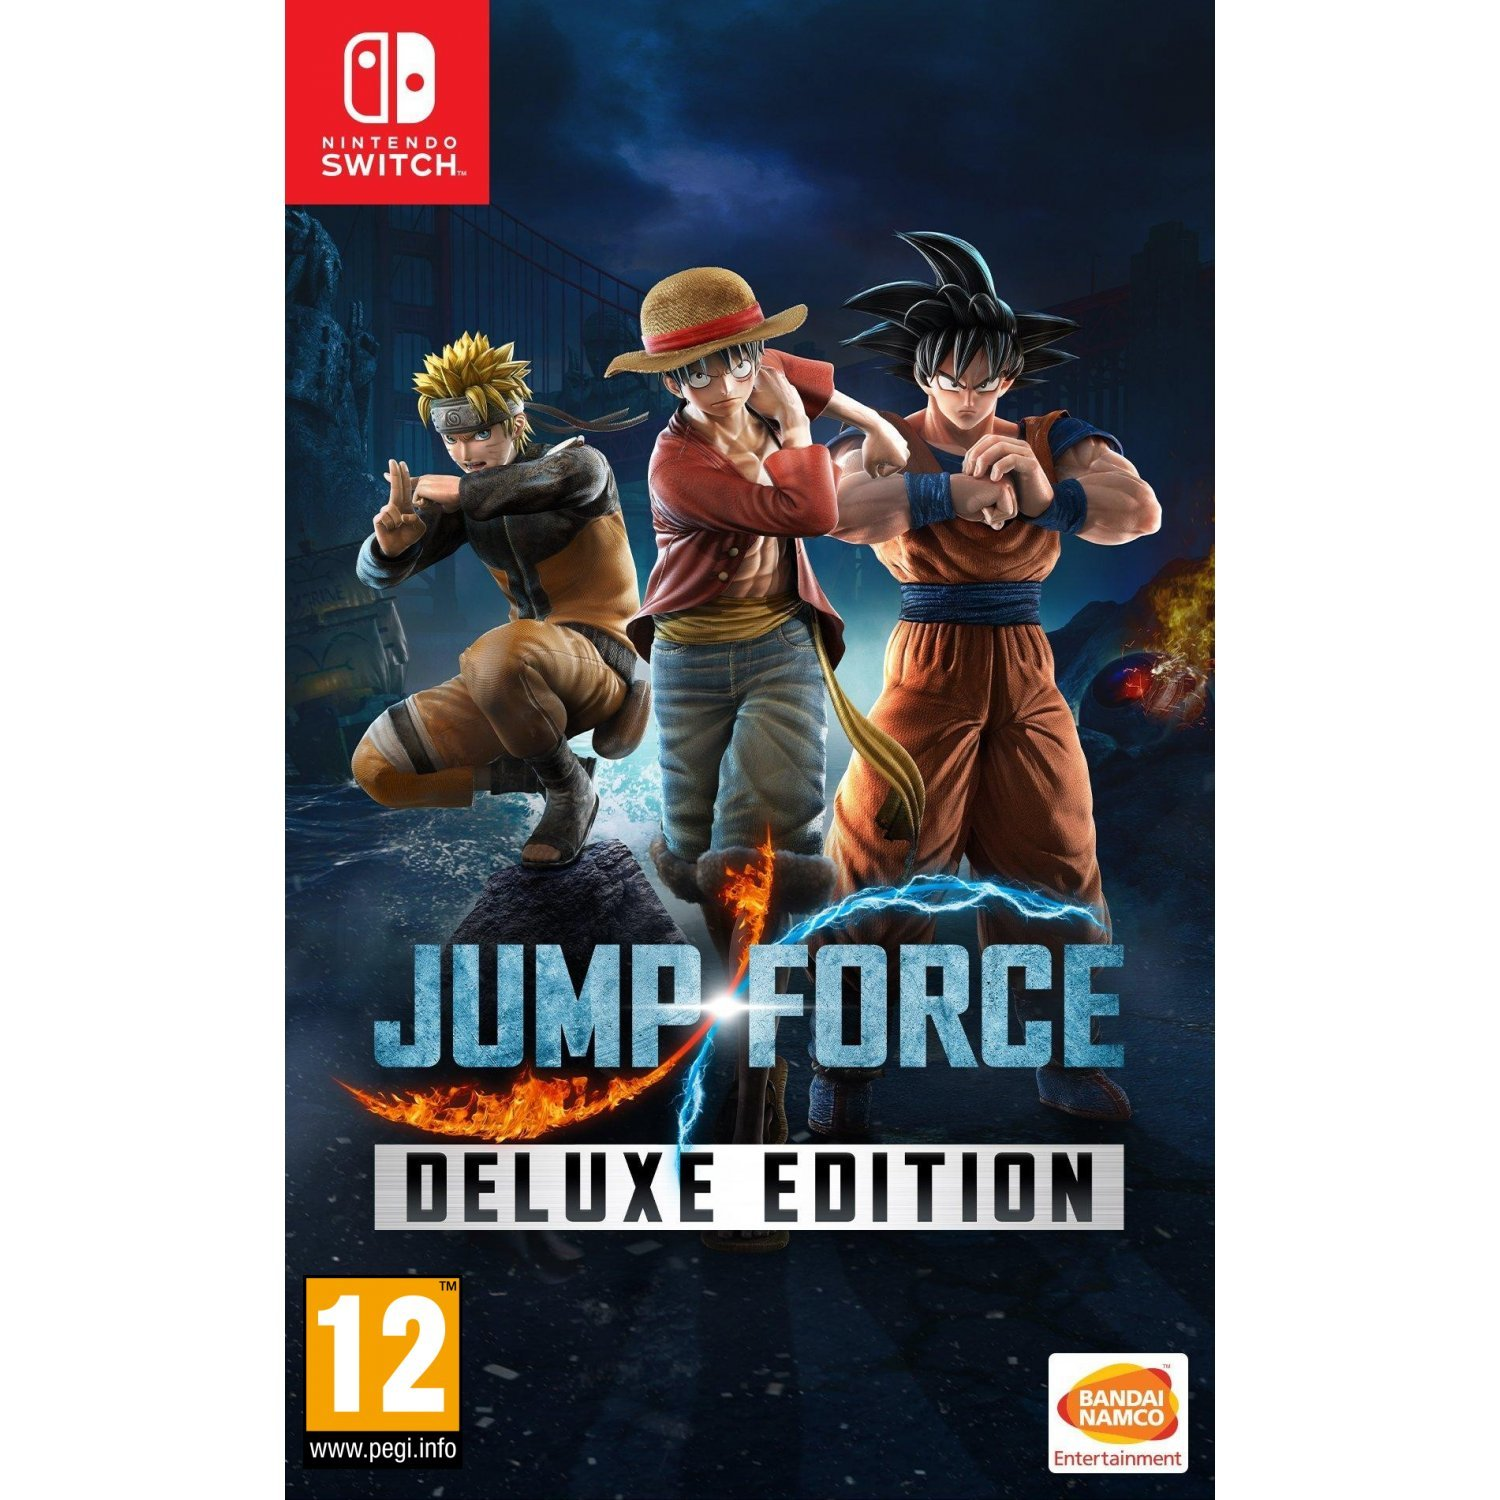 jump-force-deluxe-edition-english-subs-632551.13.jpg